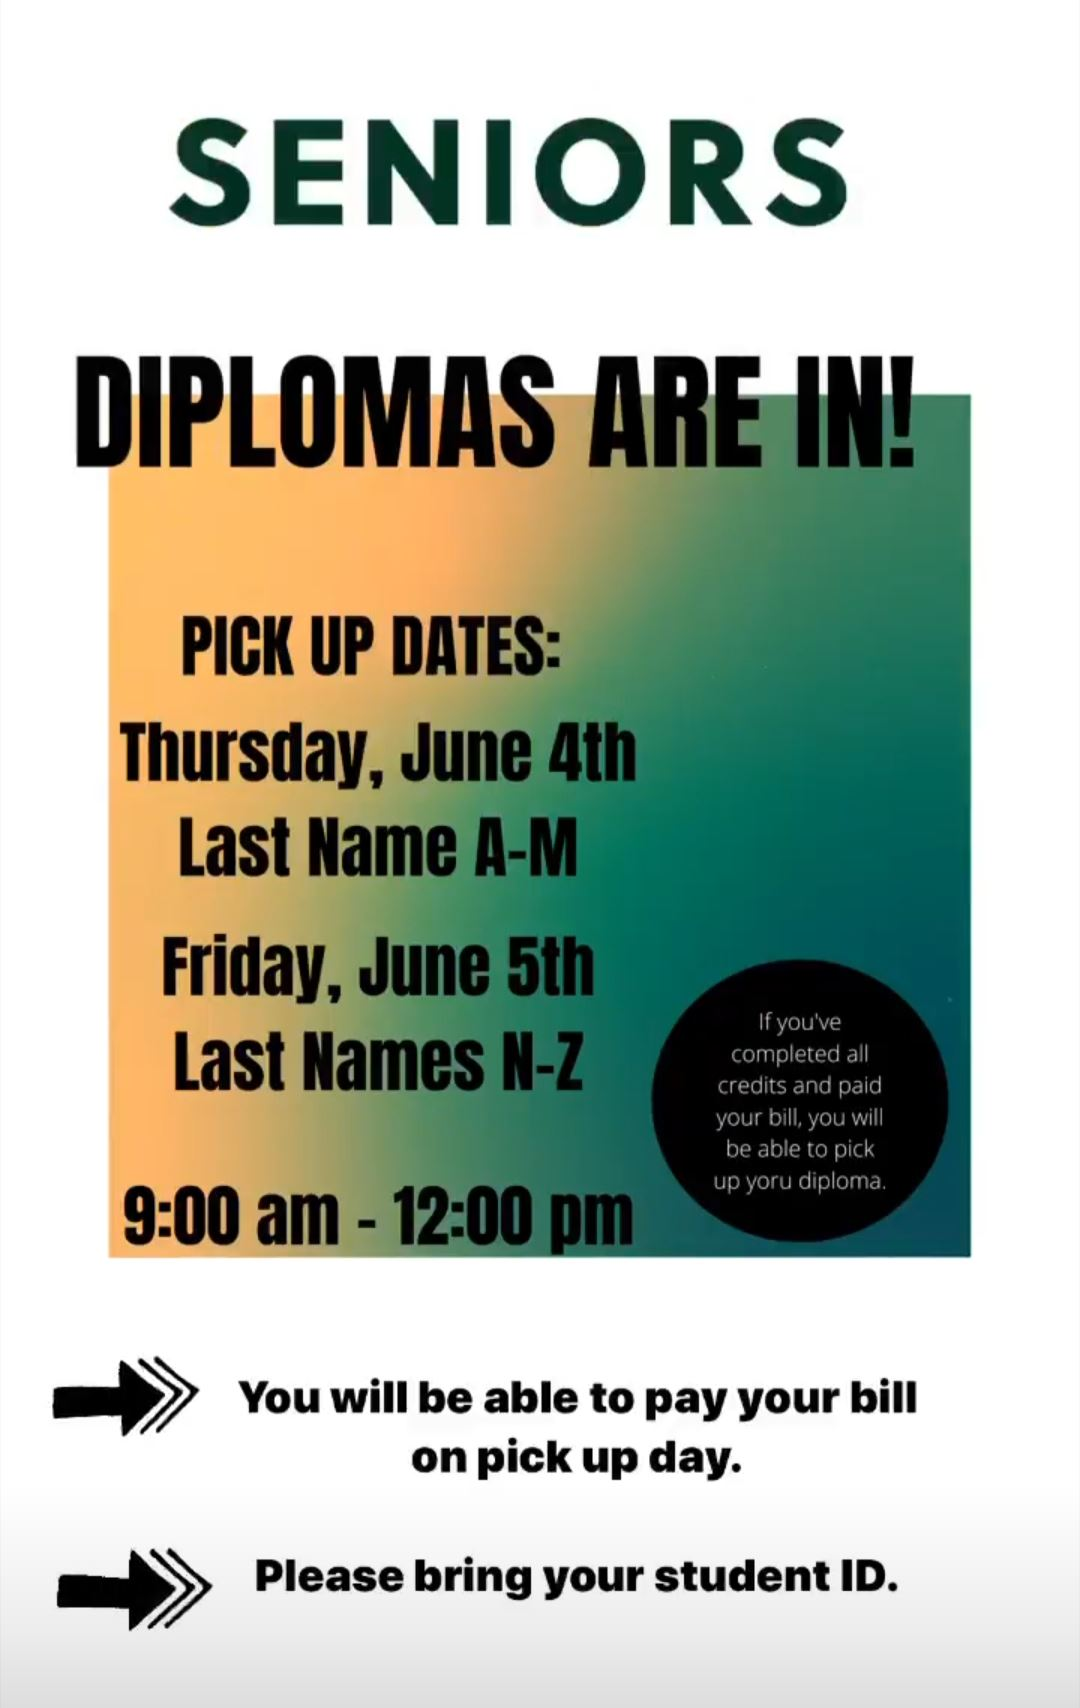 Attention Seniors: Diplomas are in!